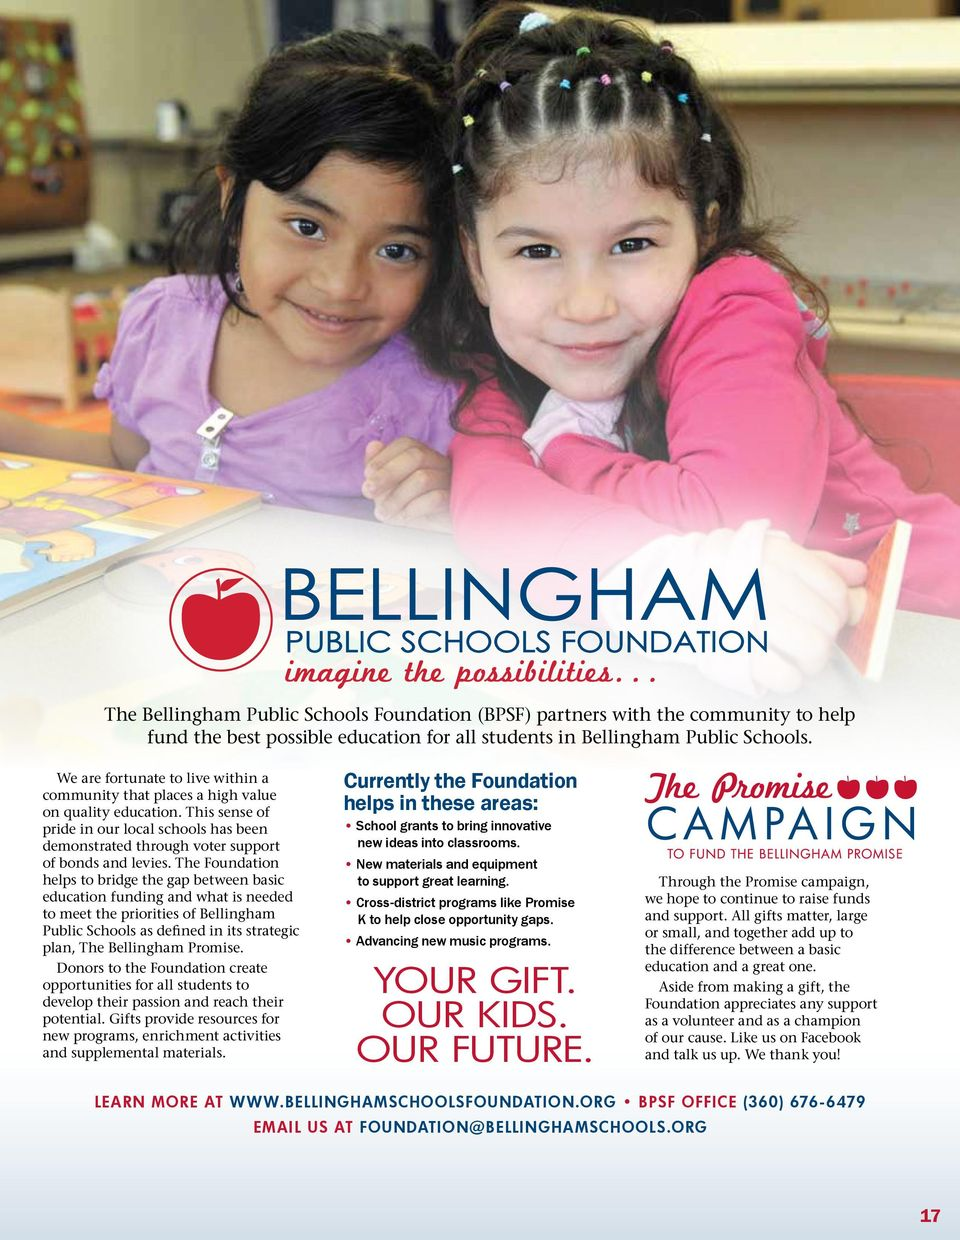 The Foundation helps to bridge the gap between basic education funding and what is needed to meet the priorities of Bellingham Public Schools as defined in its strategic plan, The Bellingham Promise.